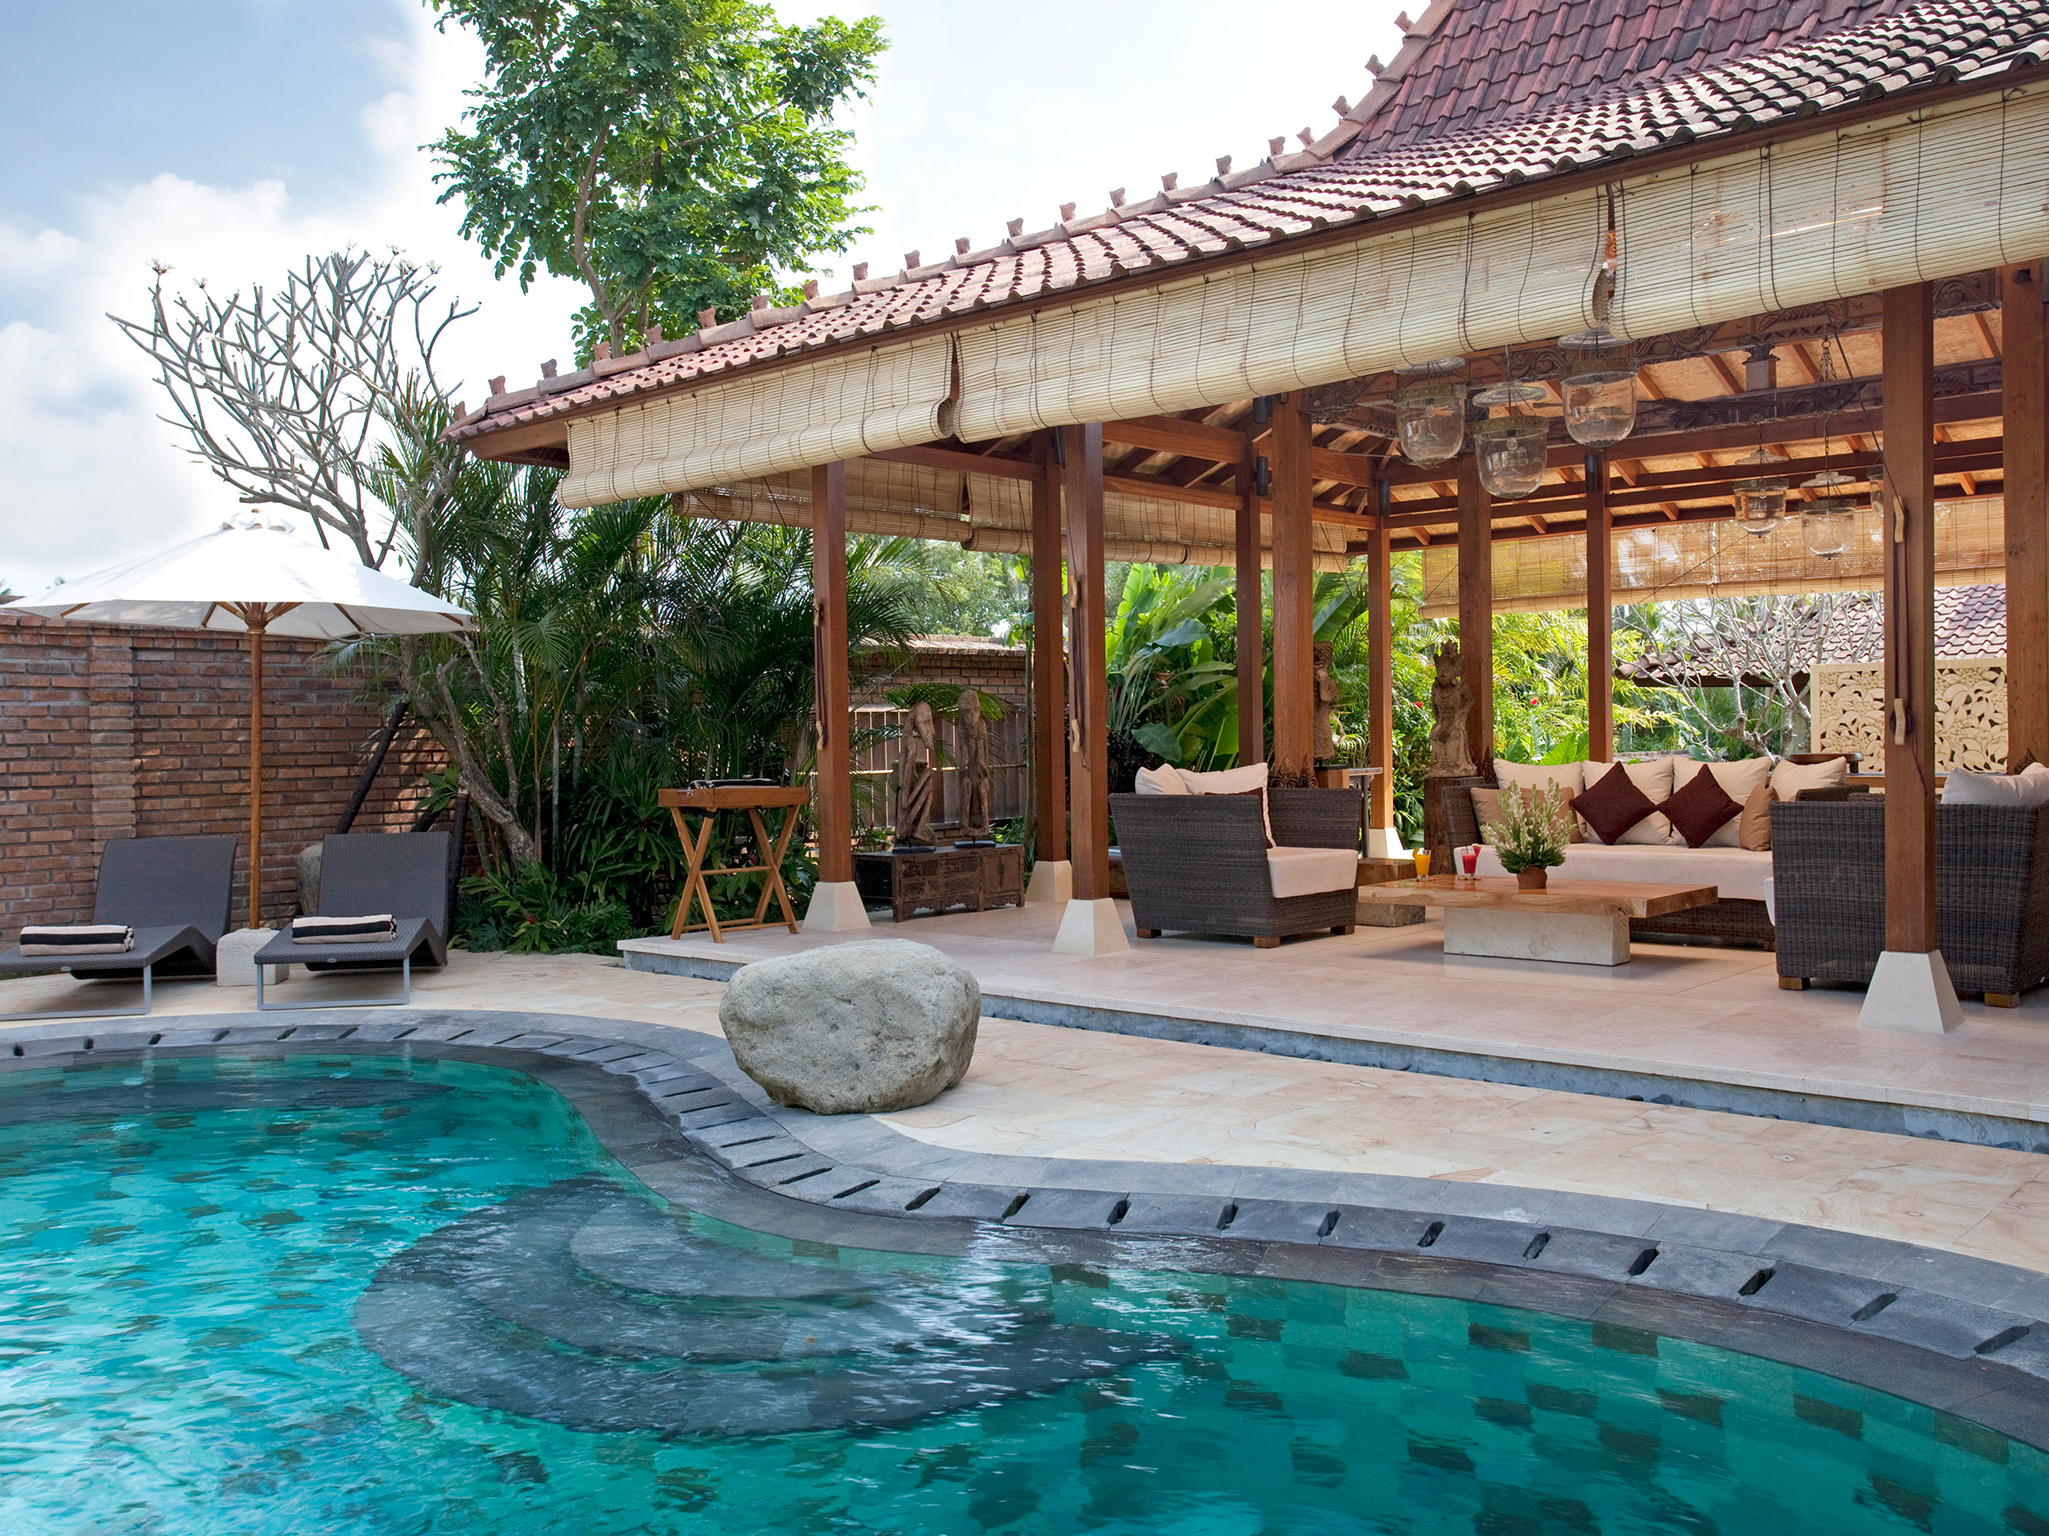 2. Villa Amy - Pool and living pavillion - Dea Villas - Villa Amy, Canggu, Bali